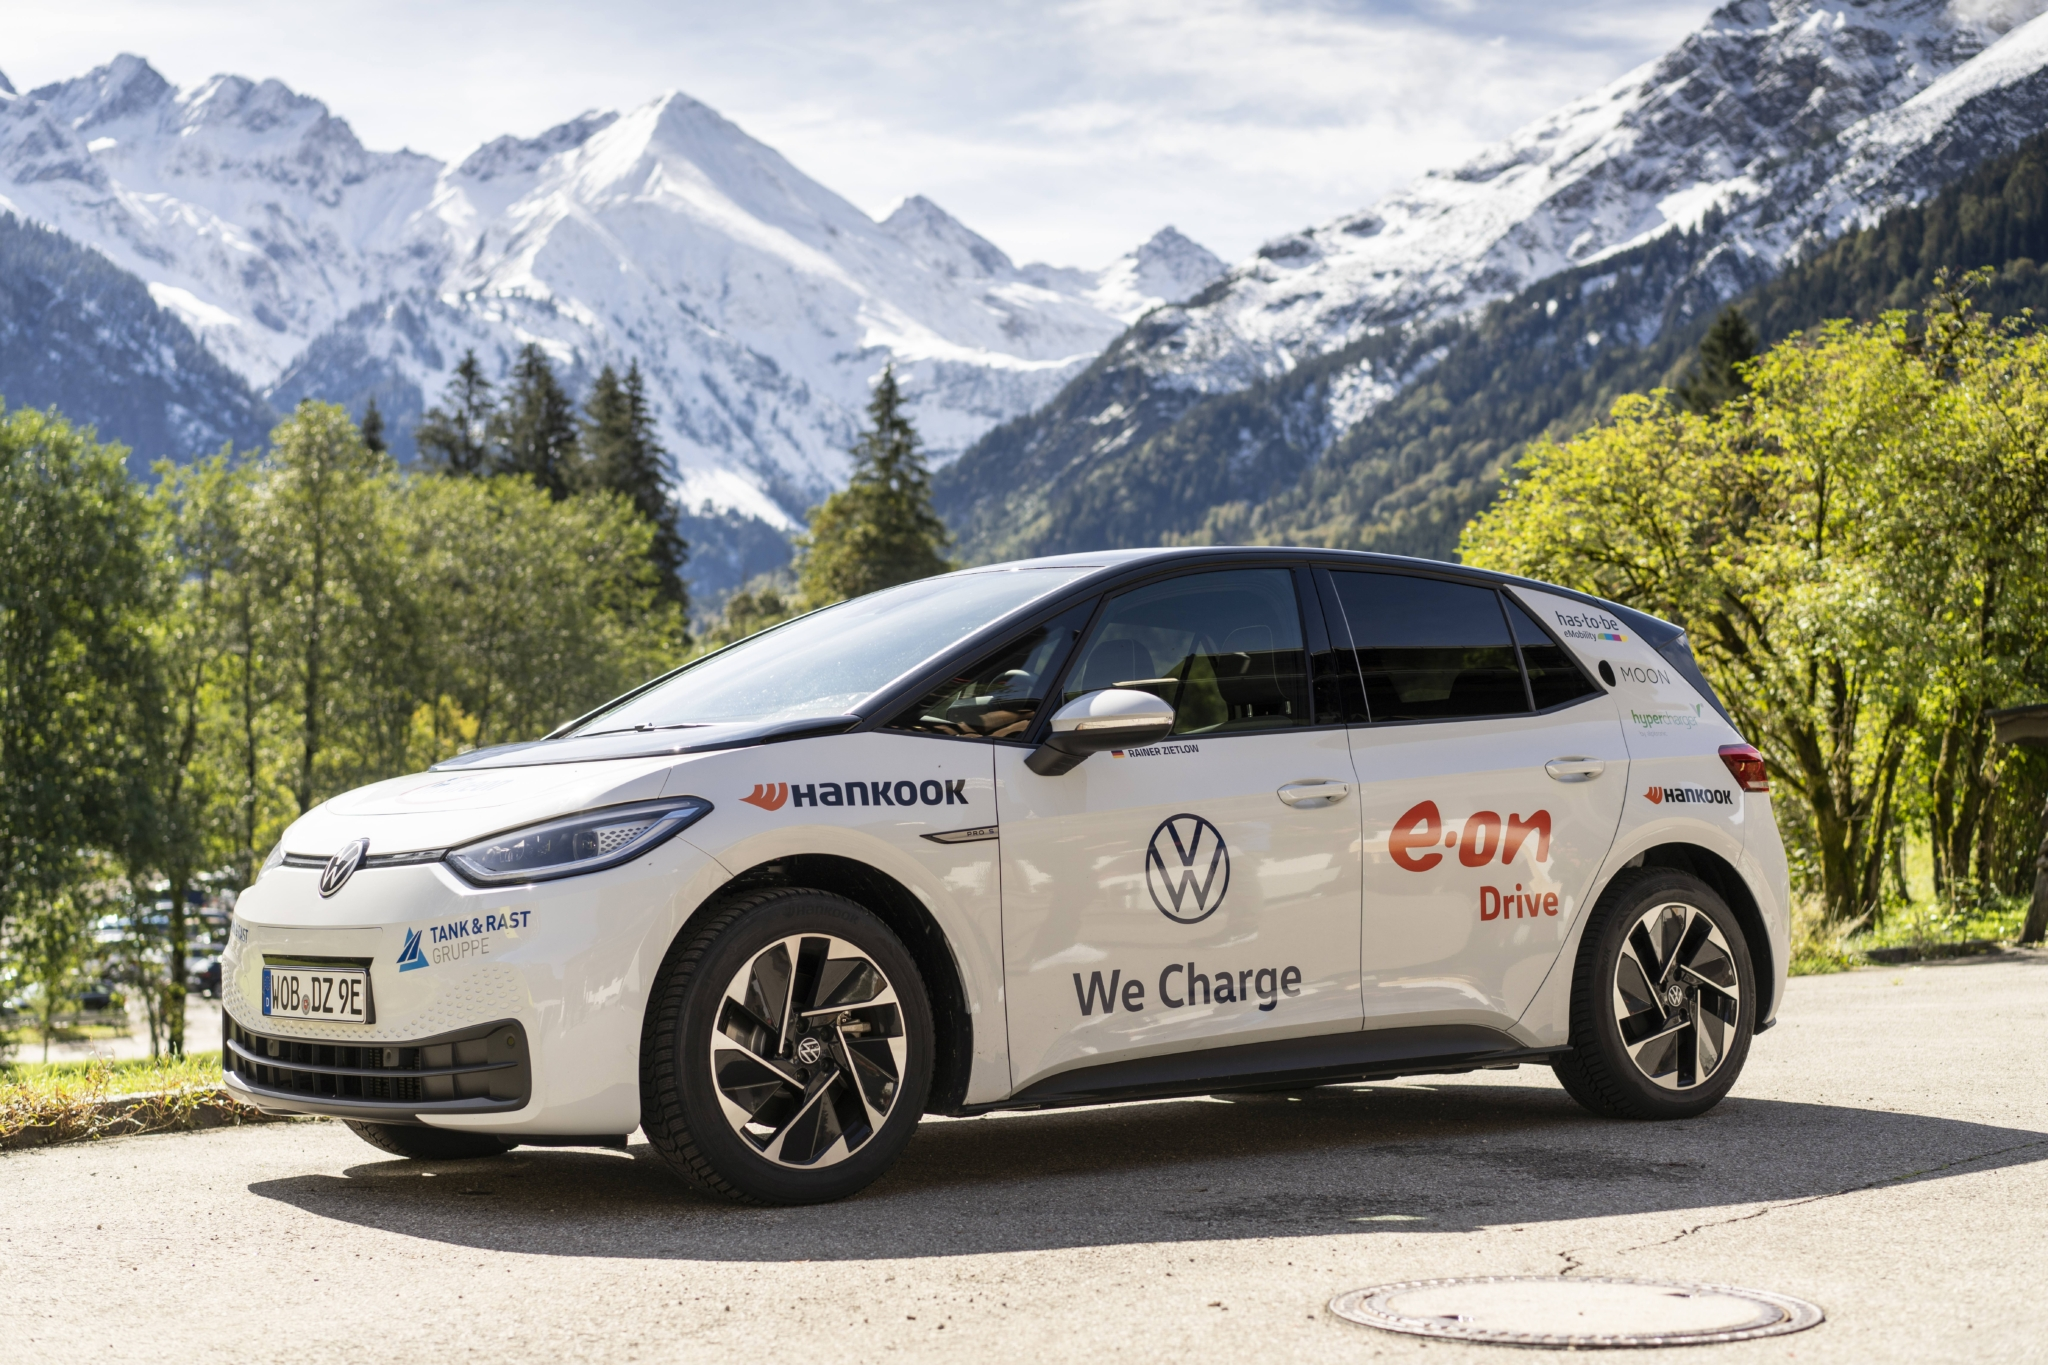 Volkswagen electric ID.3 tours Germany on Hankook i*cept evo 3 winter tyres